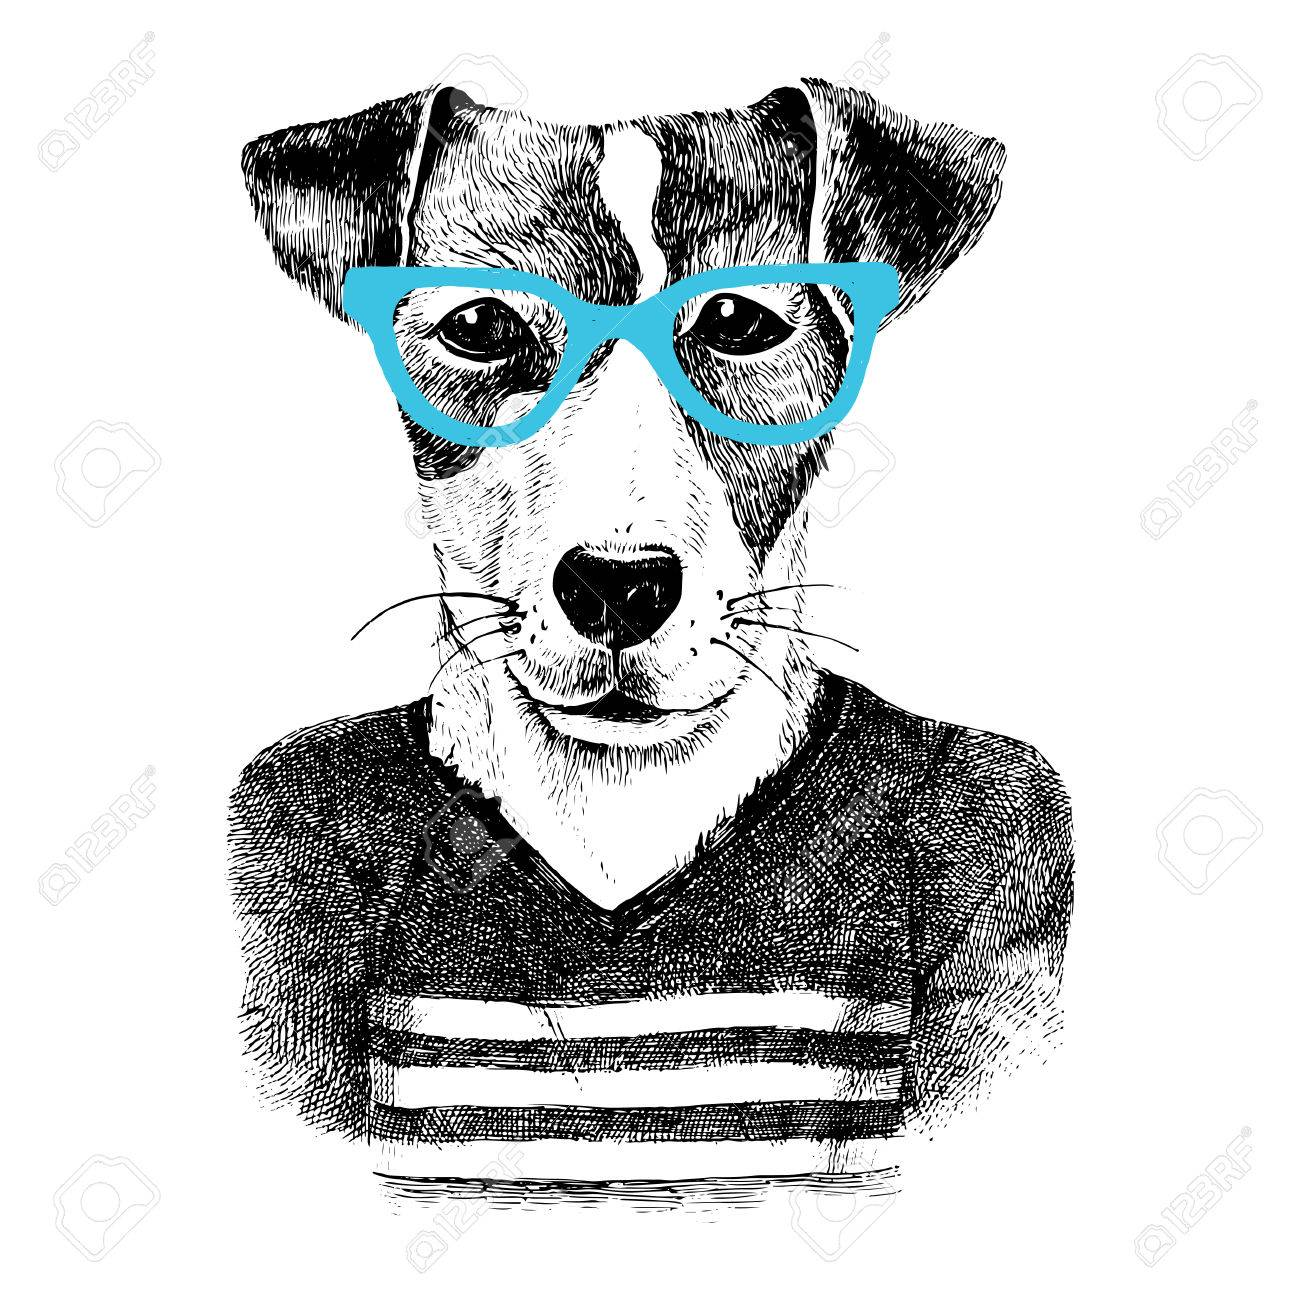 Hand drawn dressed up dog in hipster style - 58842932